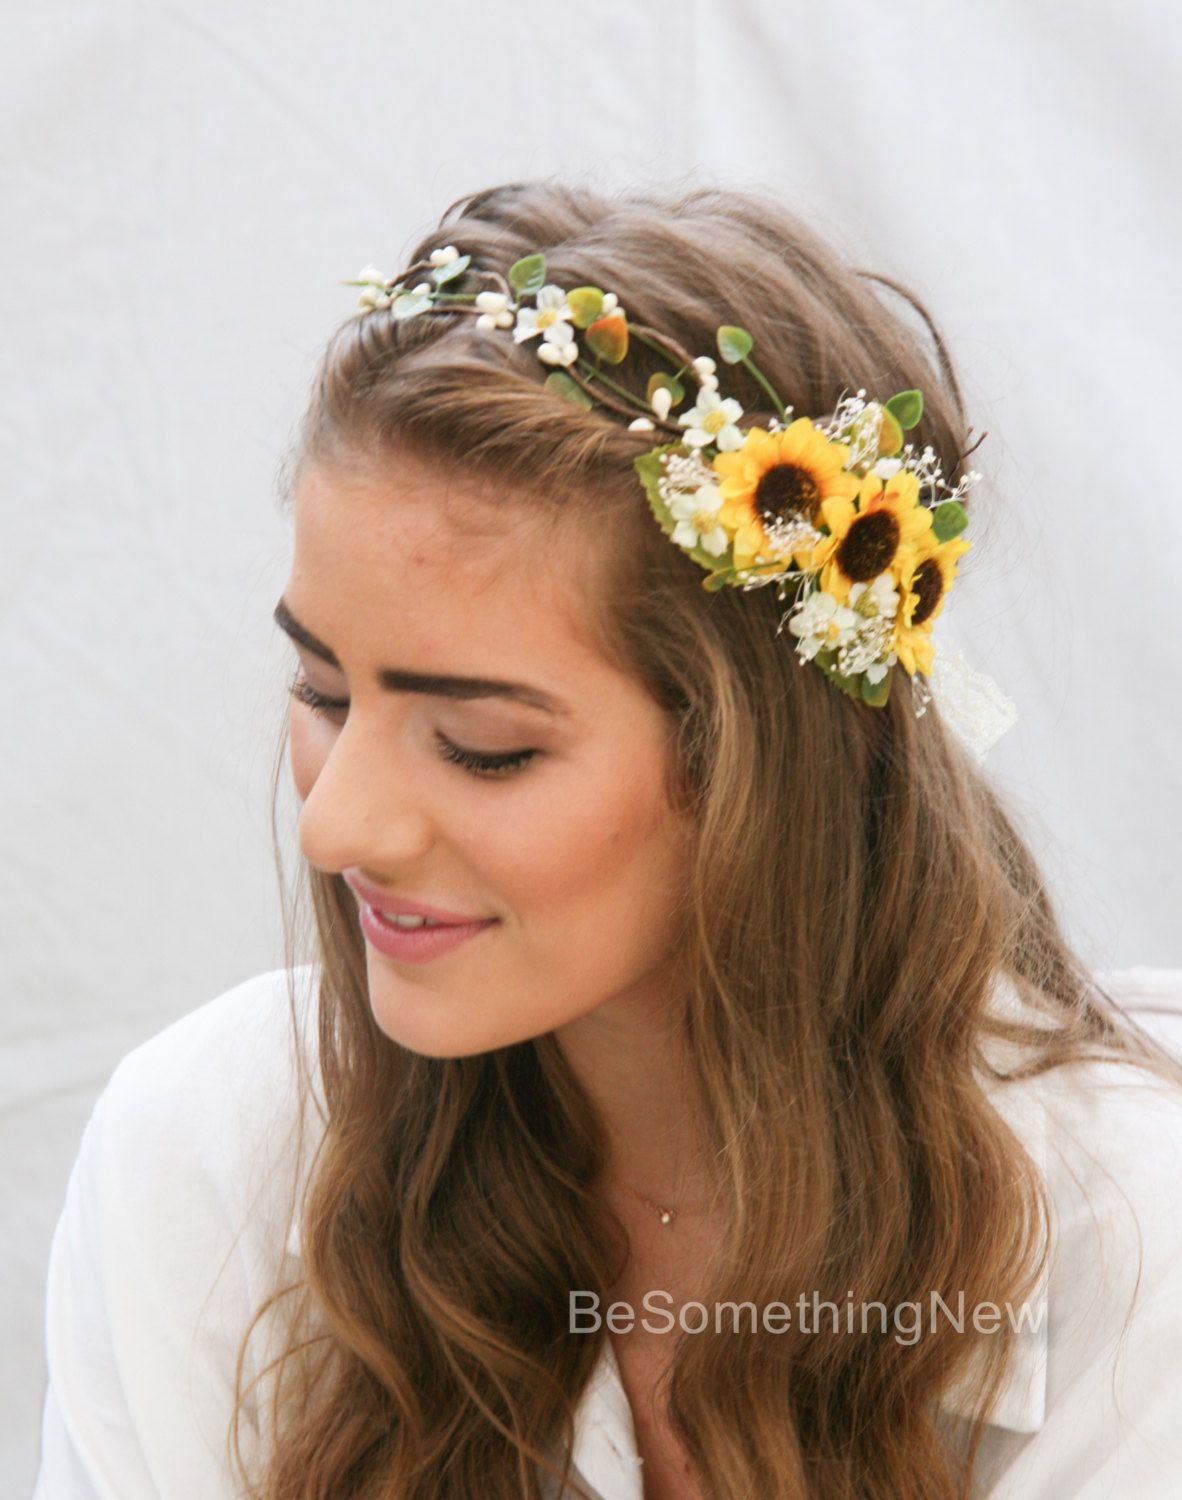 Sunflower flower crown with green leaves and babies breath wedding sunflower flower crown with green leaves and babies breath wedding hair yellow floral halo boho wedding bridesmaid or flower girl headband izmirmasajfo